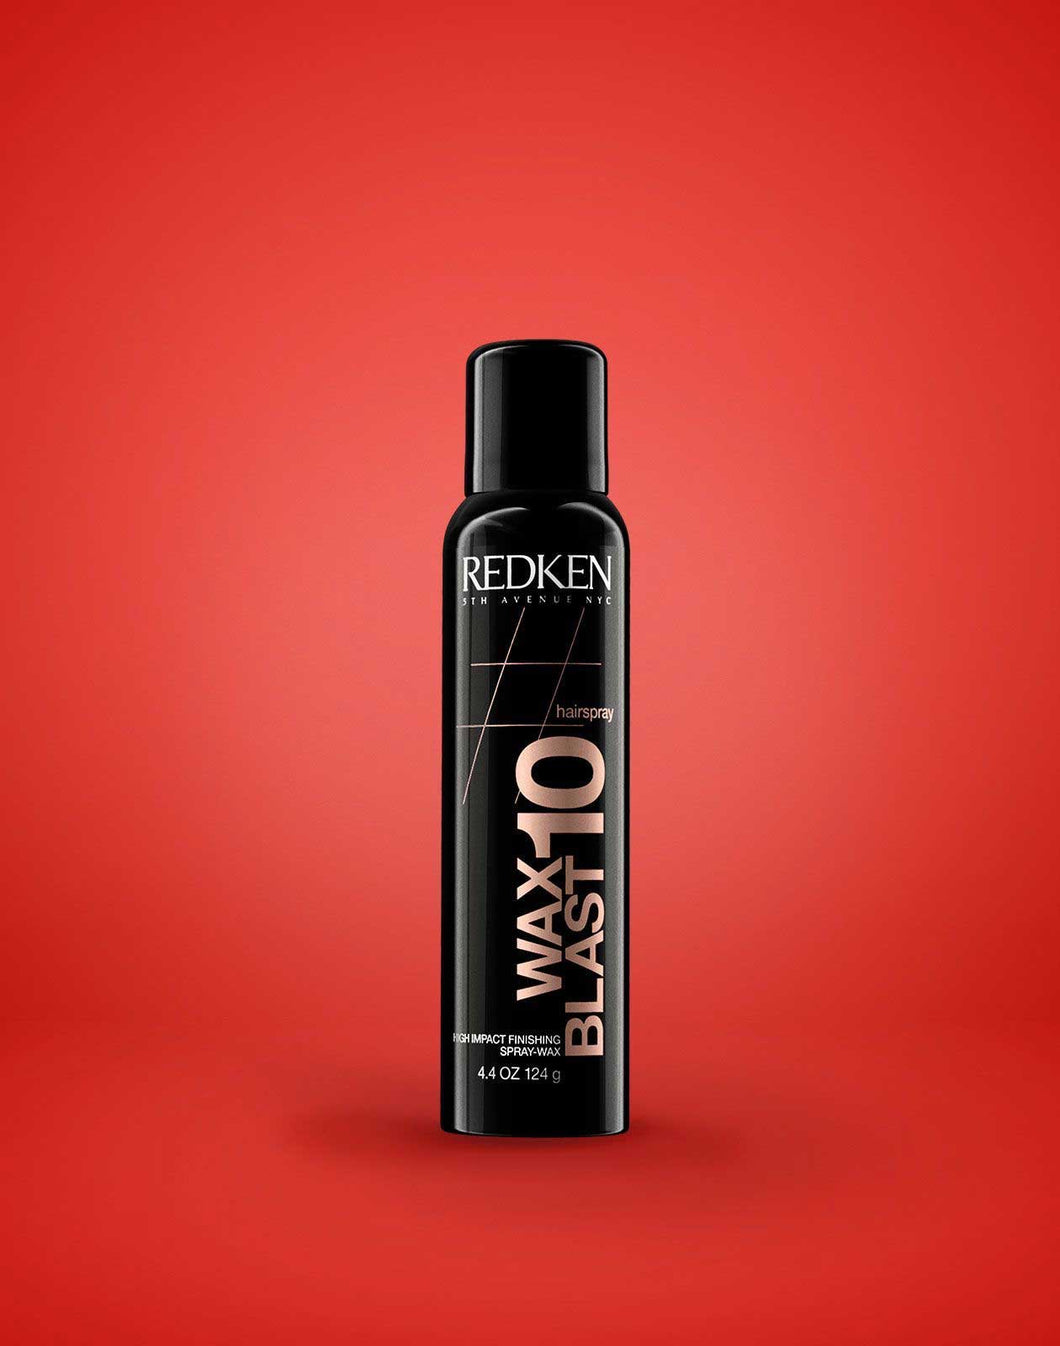 WAX BLAST 10 HIGH IMPACT FINISHING SPRAY-WAX - Salon Elemis